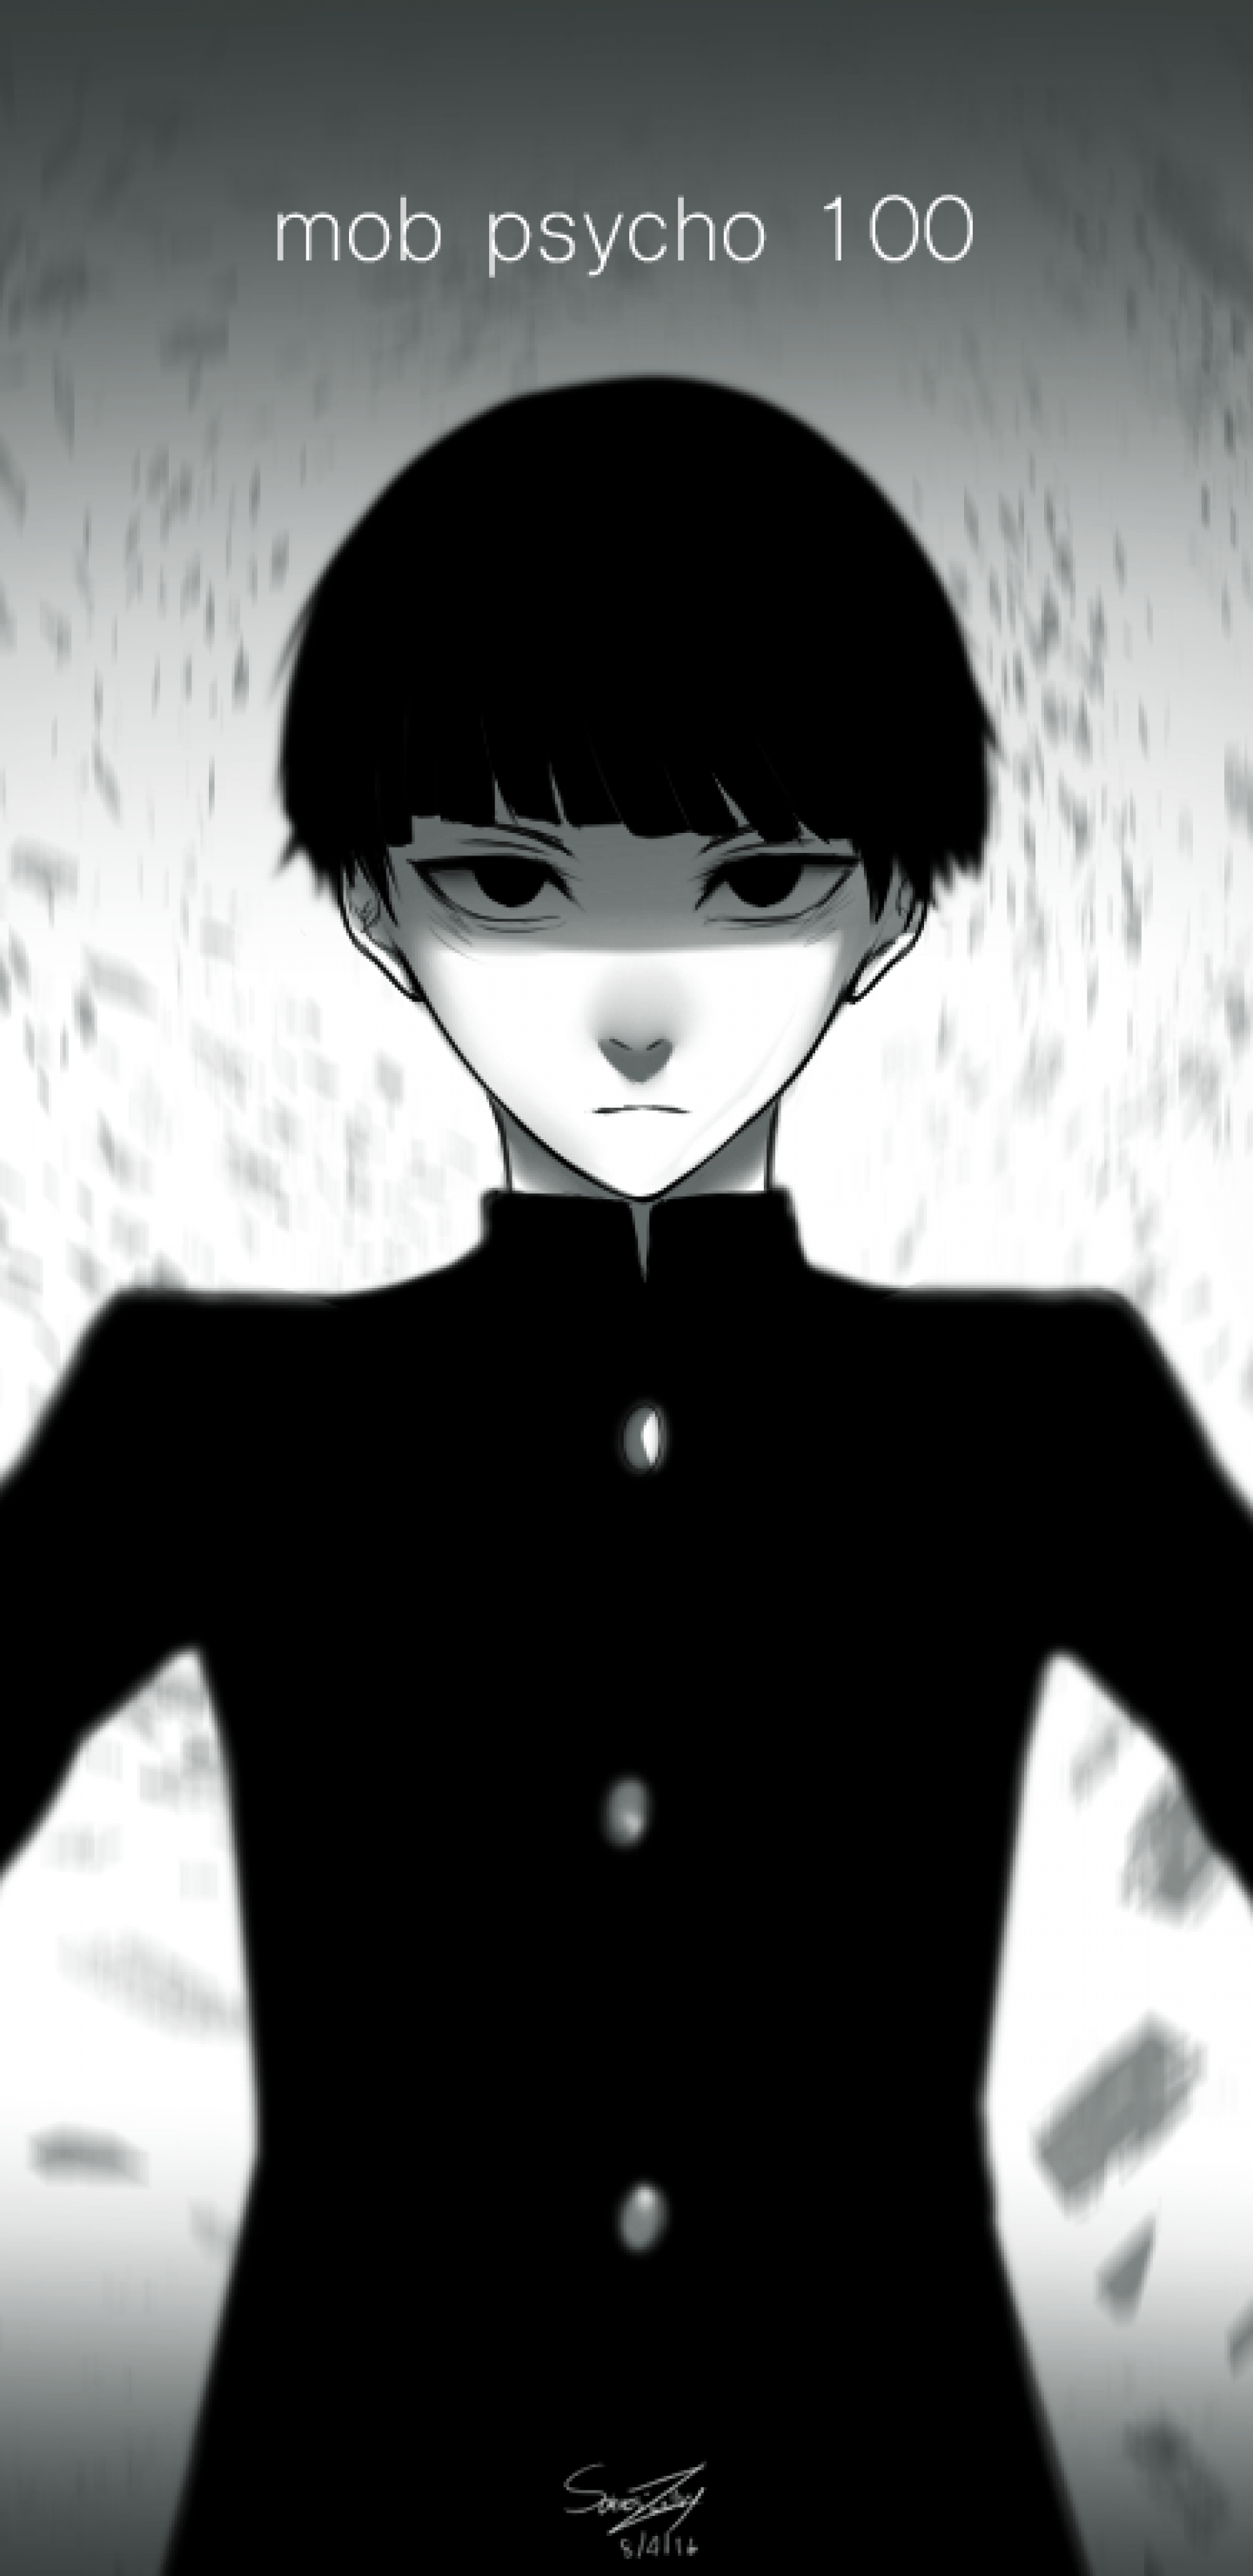 Download 1440x2960 Mob Psycho 100, Shigeo Kageyama, Black And White